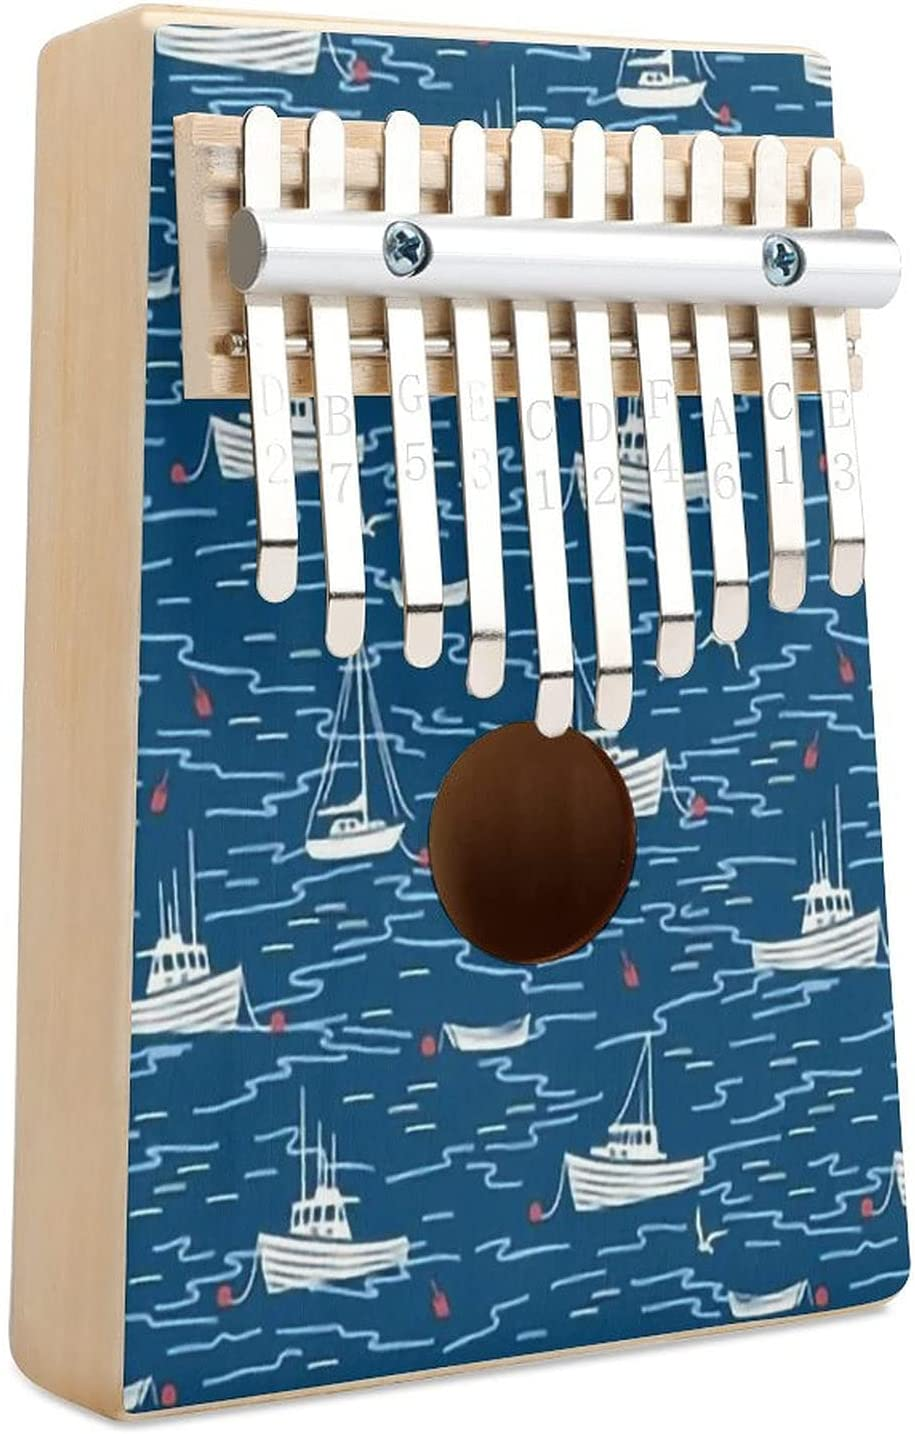 Harbor Award-winning store Boats Navy Blue White Red Kalimba Thumb Scale Piano Small Credence